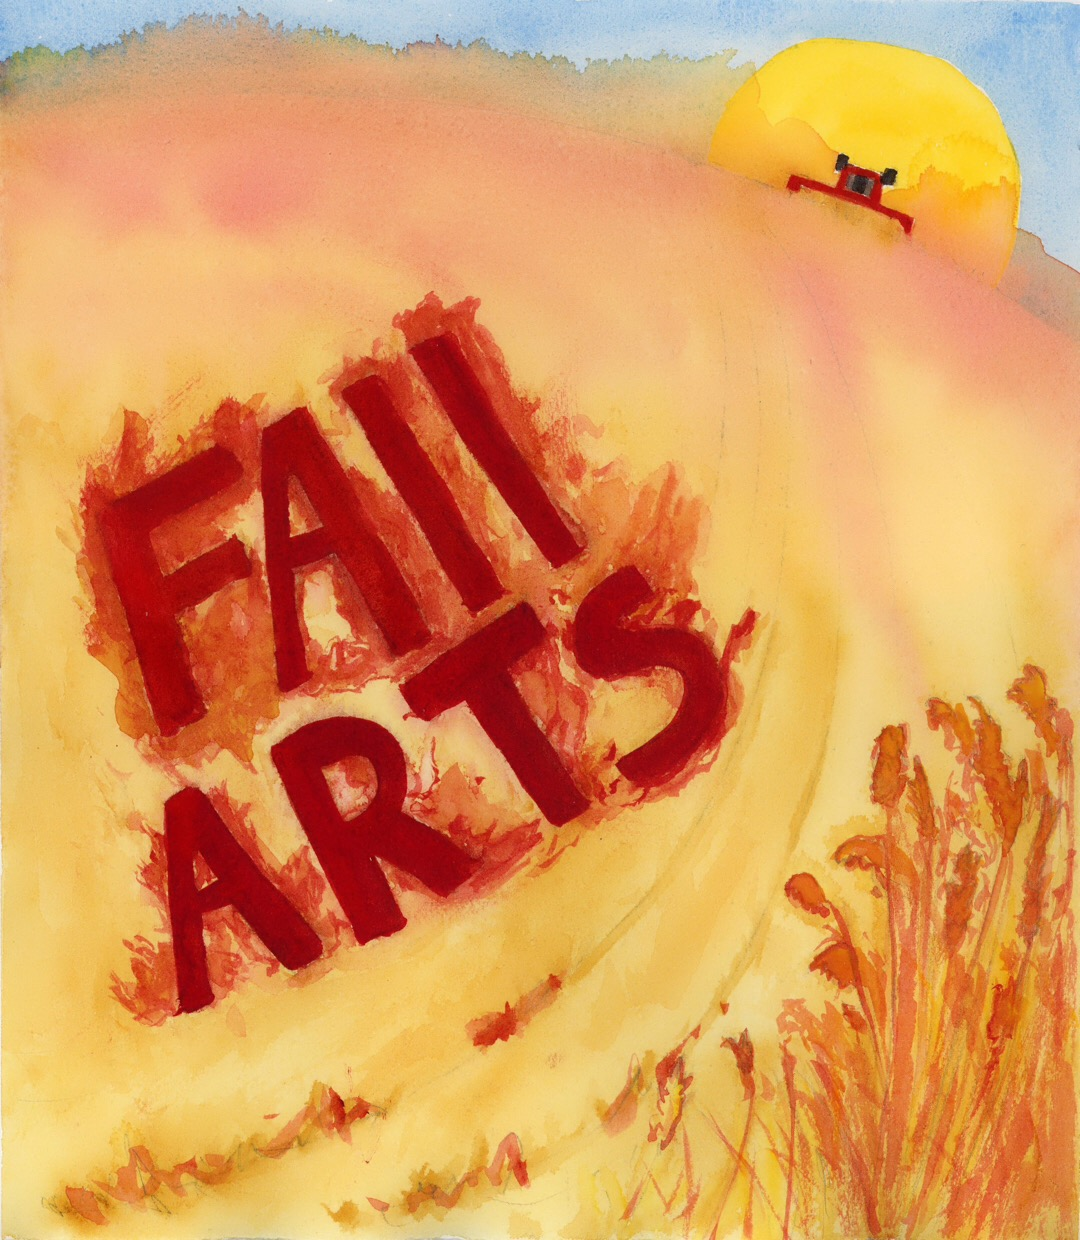 This is the cover of the Fall Arts Pull Out inside the newspaper. Surrounded by wheat and with the way the past few summers have been, it isn't surprising that this is what came to mind when I thought of fall around here.